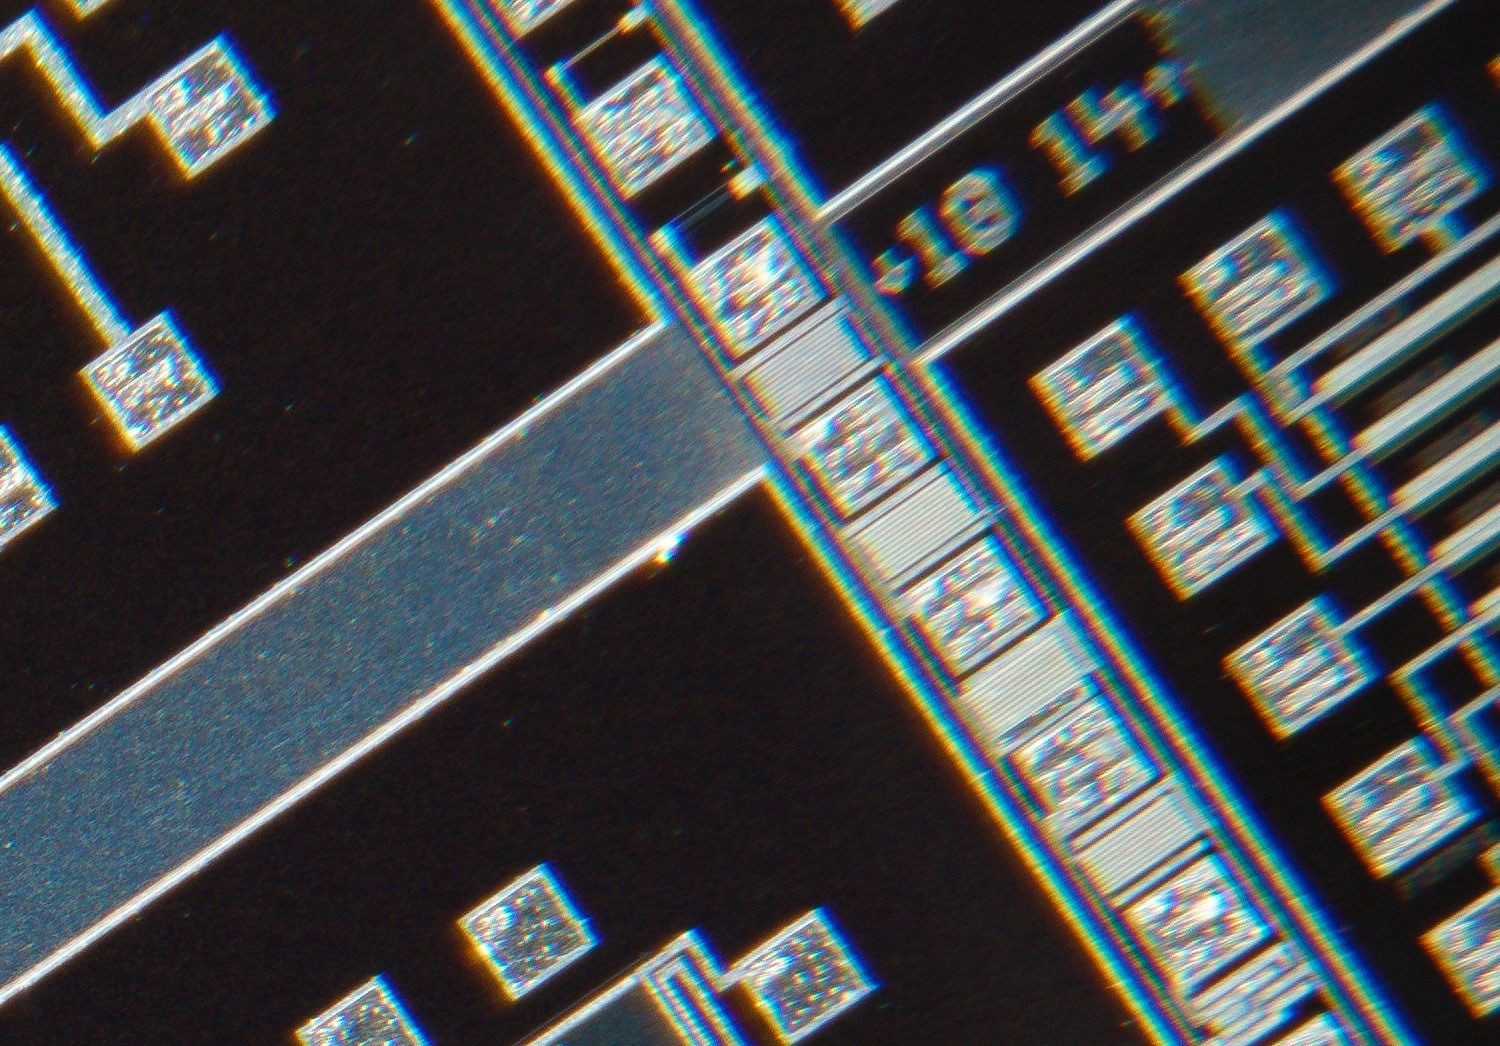 Nikon CF Plan APO 4x/0.16 160/- Finite Microscope Objective 100% actual pixel view corner crop. Clicking on an image will open a larger version.